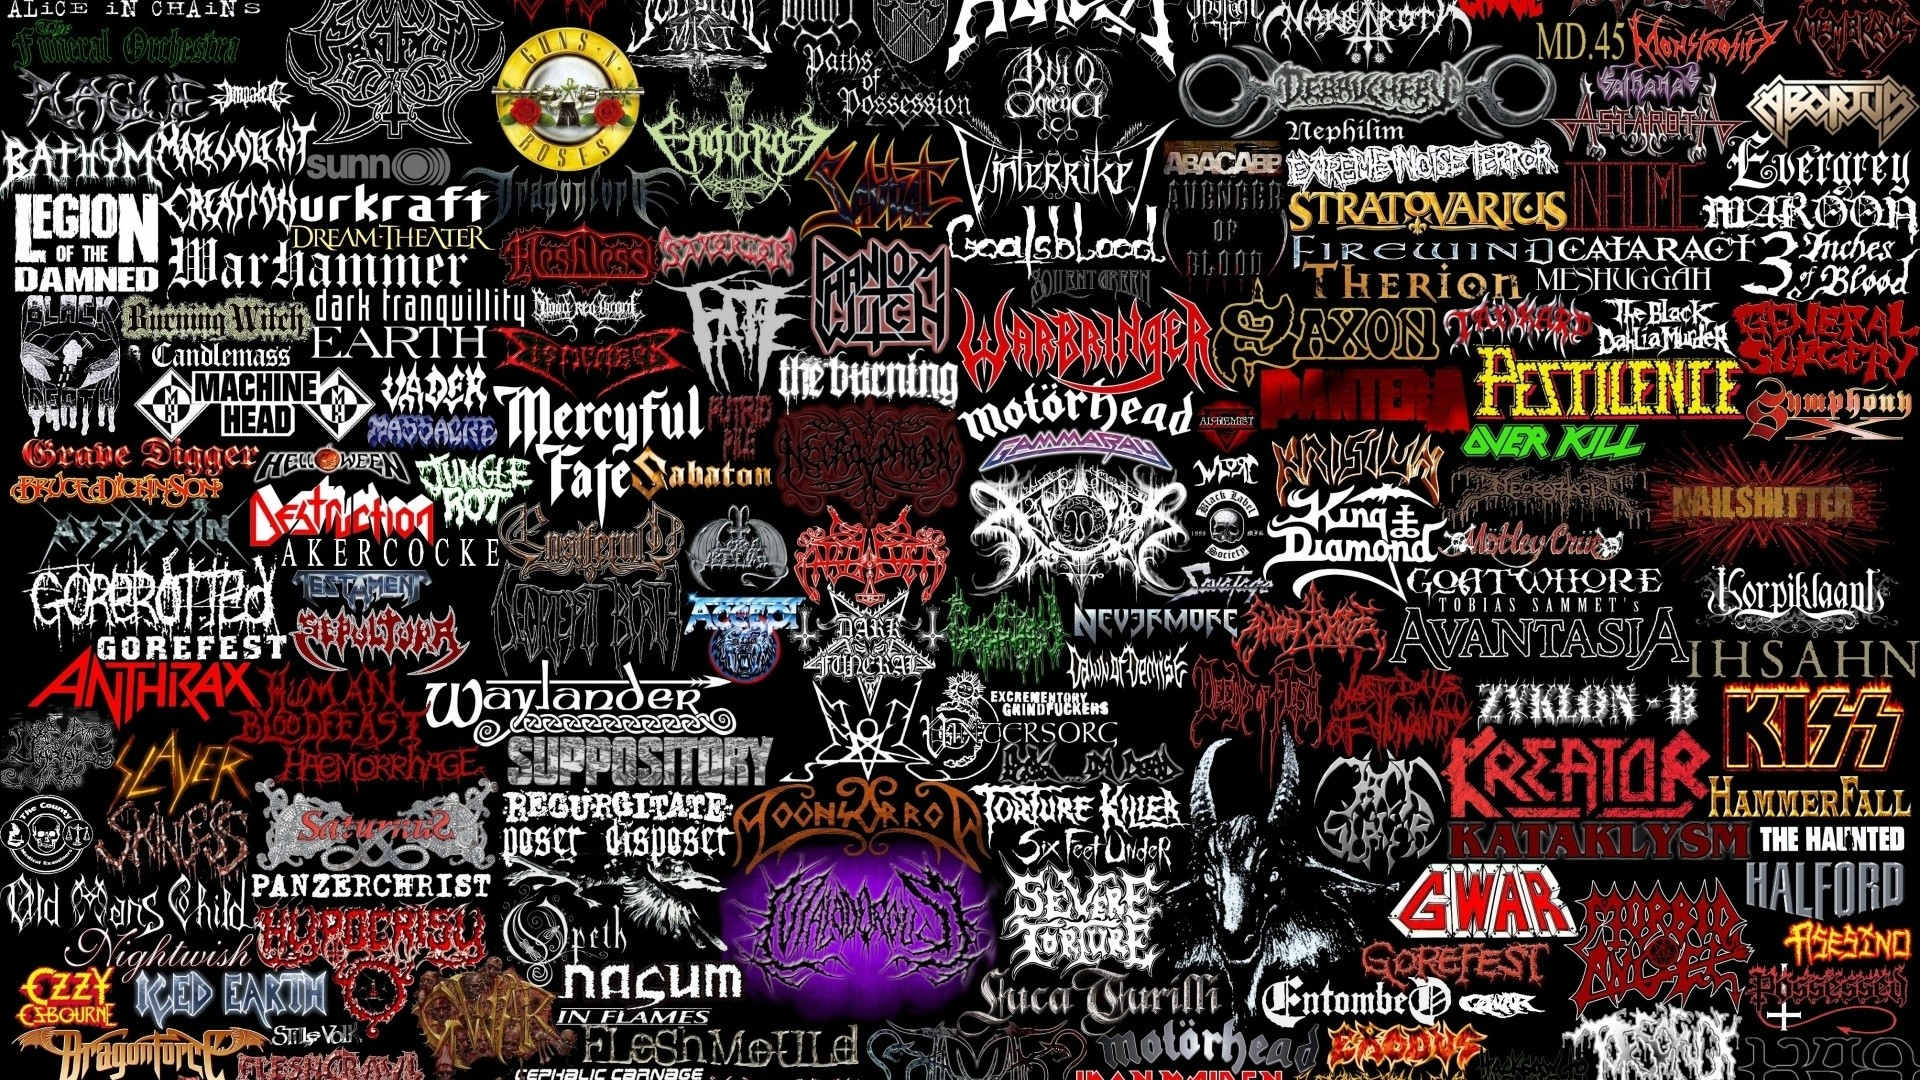 1920x1080  Music Logo, Rock Bands Wallpapers and Pictures ...70s Grunge  Fashion